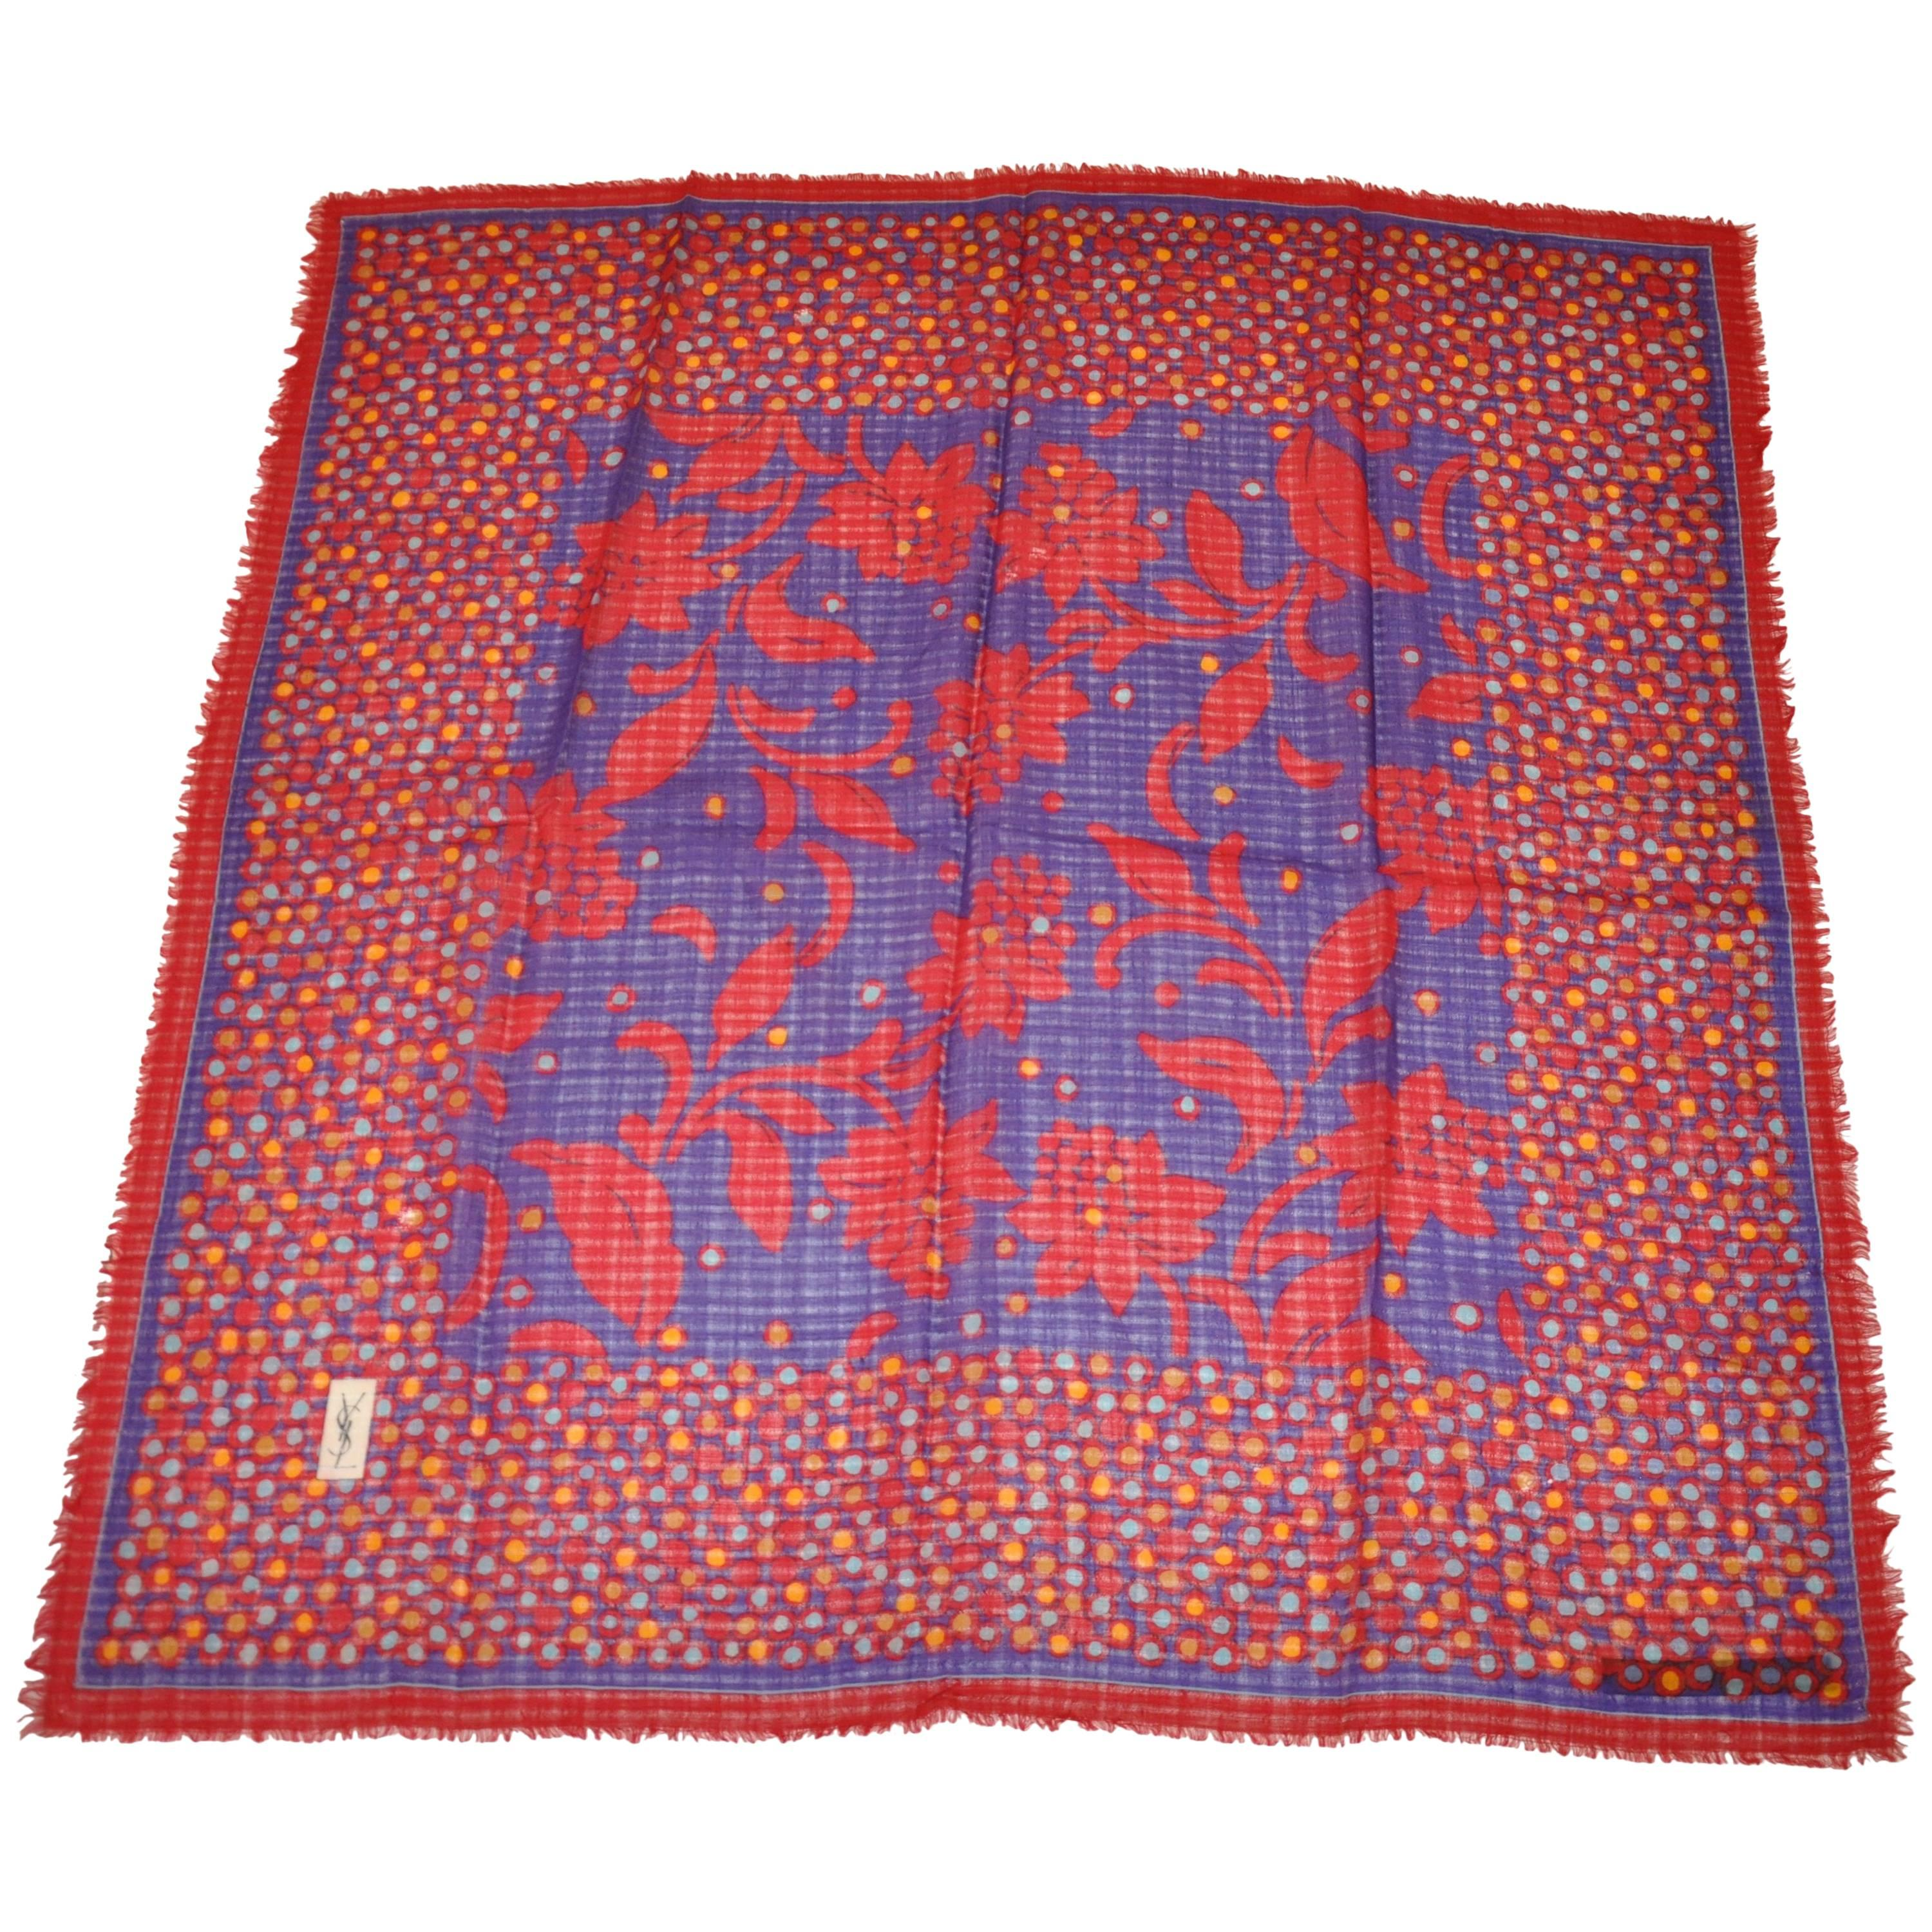 Yves Saint Laurent Red & Lapis Floral with Multi Color Border Wool Challis Scarf